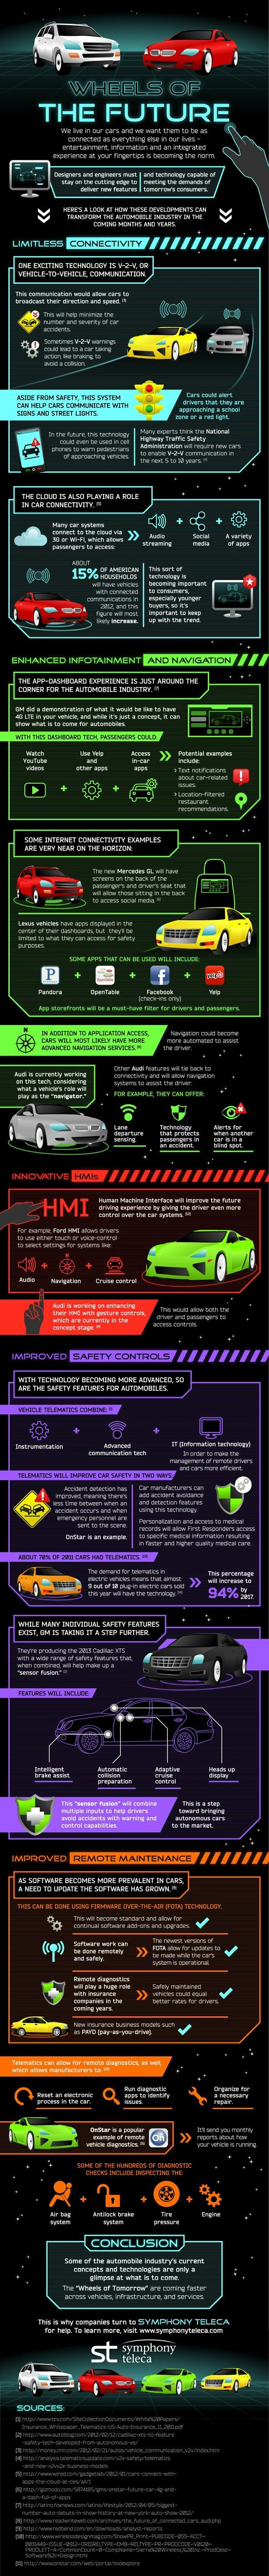 60 best Connected Car images on Pinterest